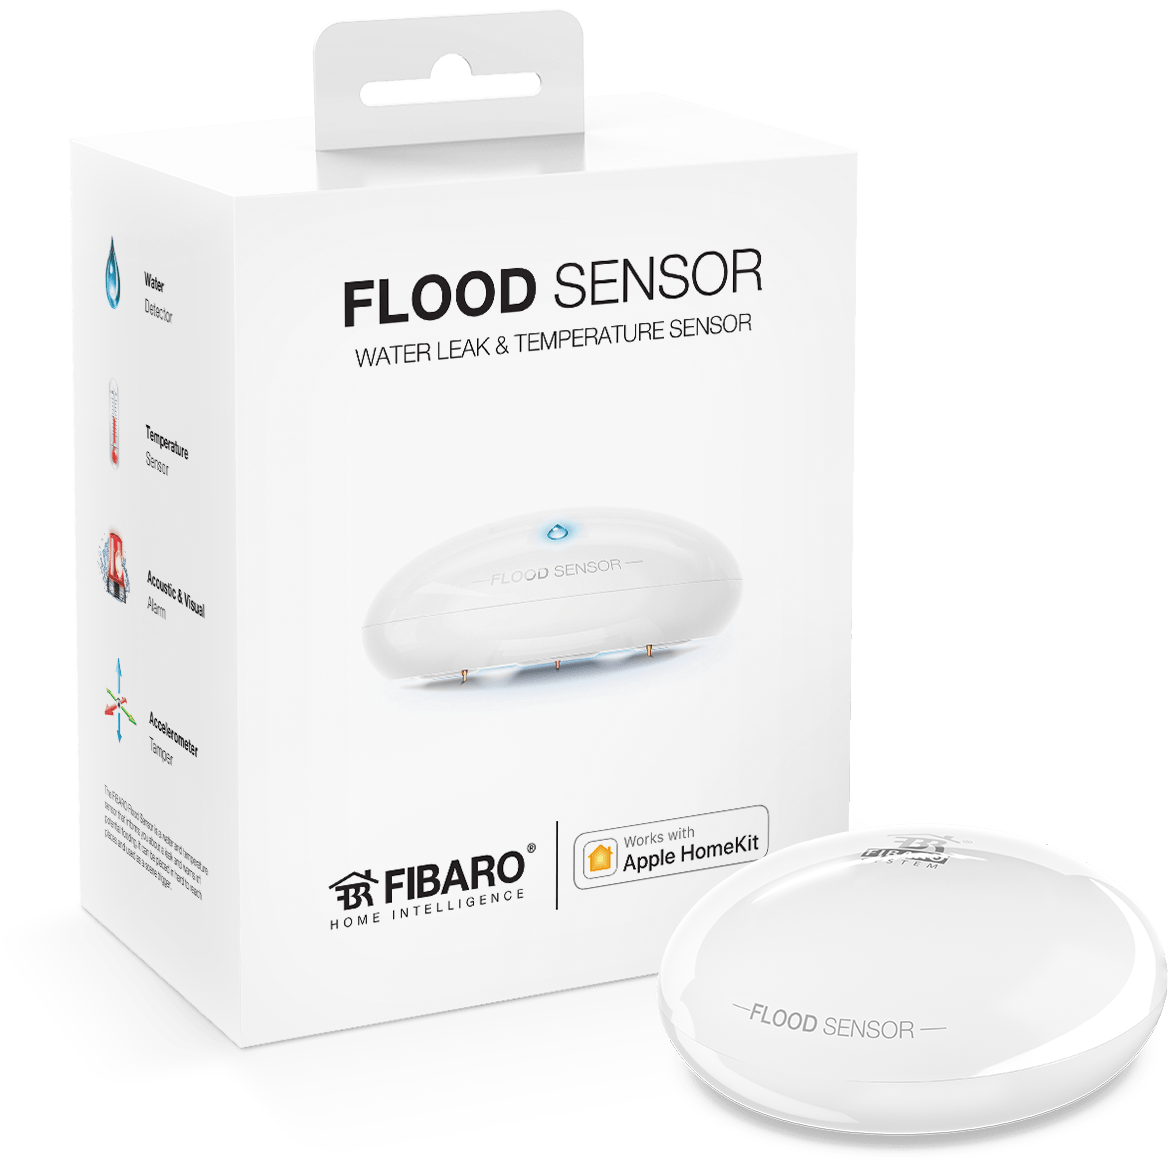 Flood Sensor Boxed